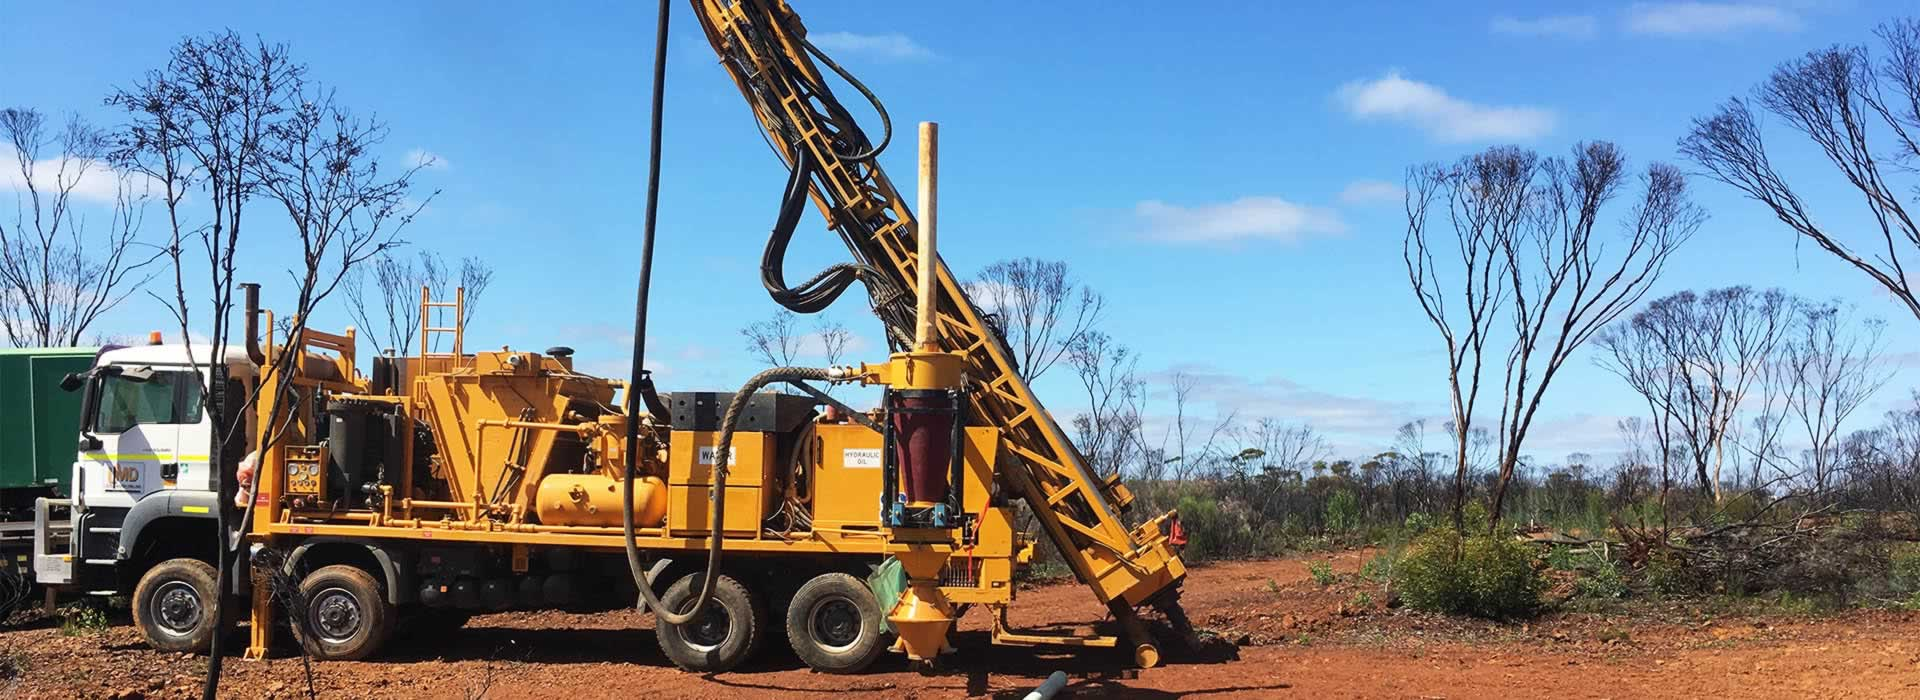 Leon Marsh Drilling LMD Southern Cross